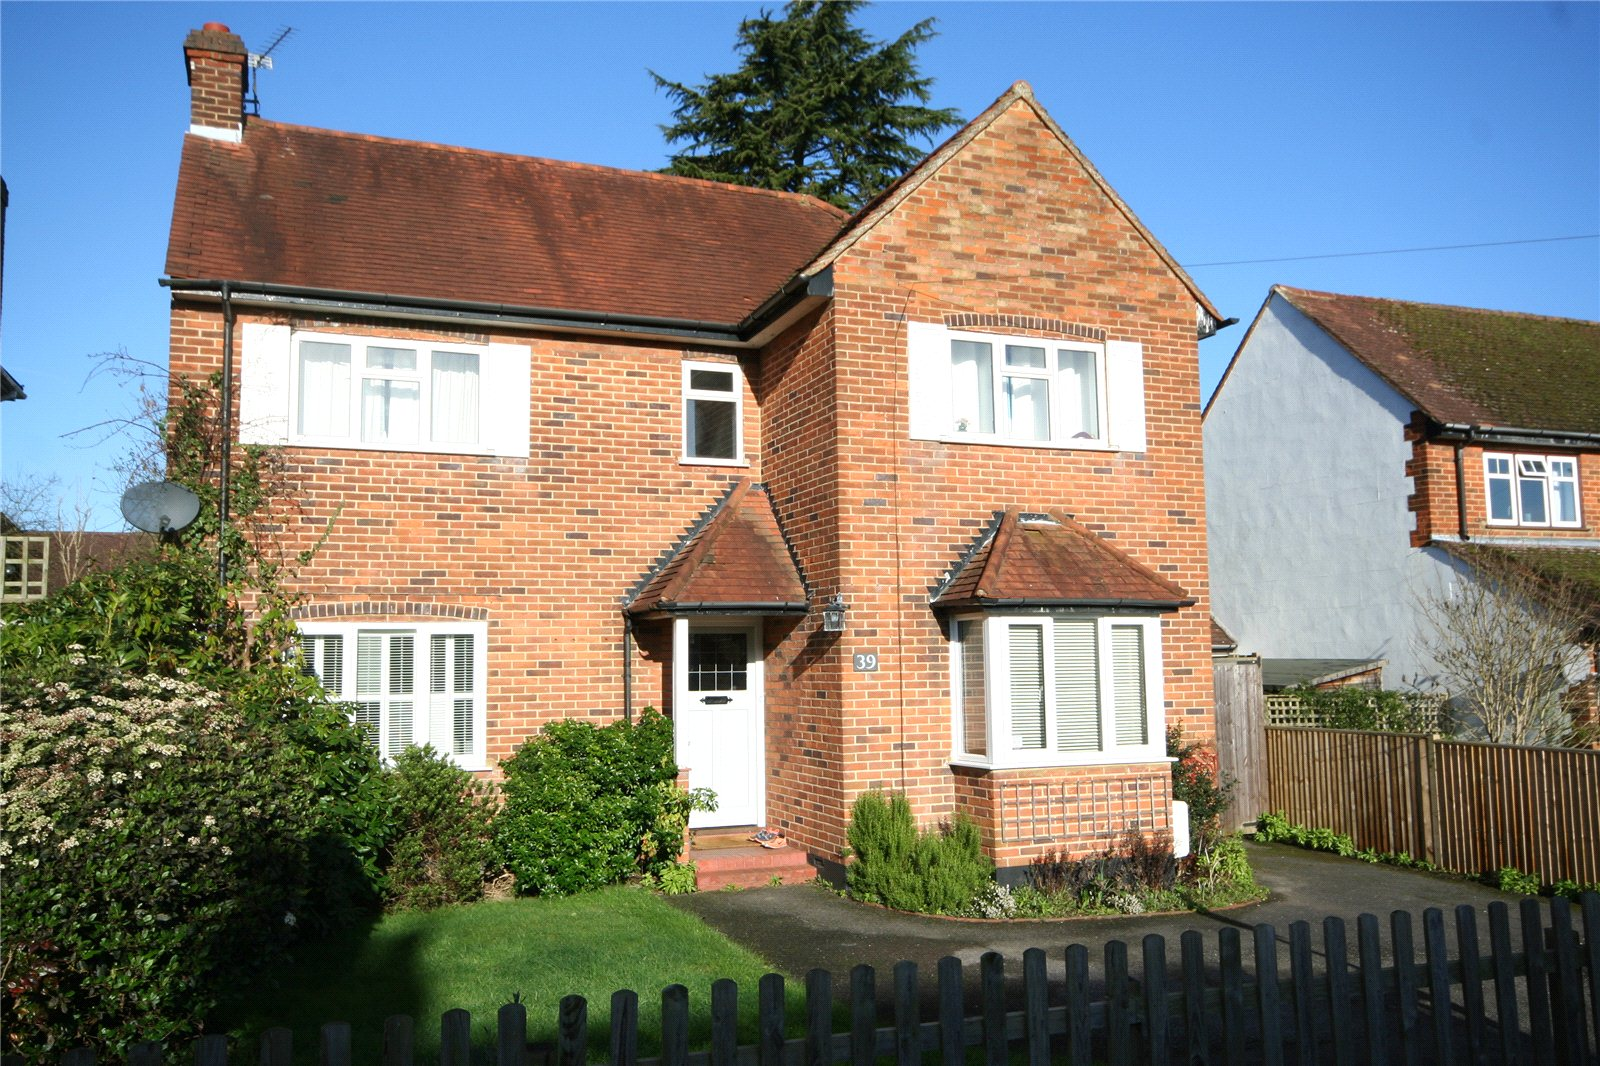 獨棟家庭住宅 為 出售 在 Nortoft Road, Chalfont St Peter, Buckinghamshire, SL9 Chalfont St Peter, 英格蘭